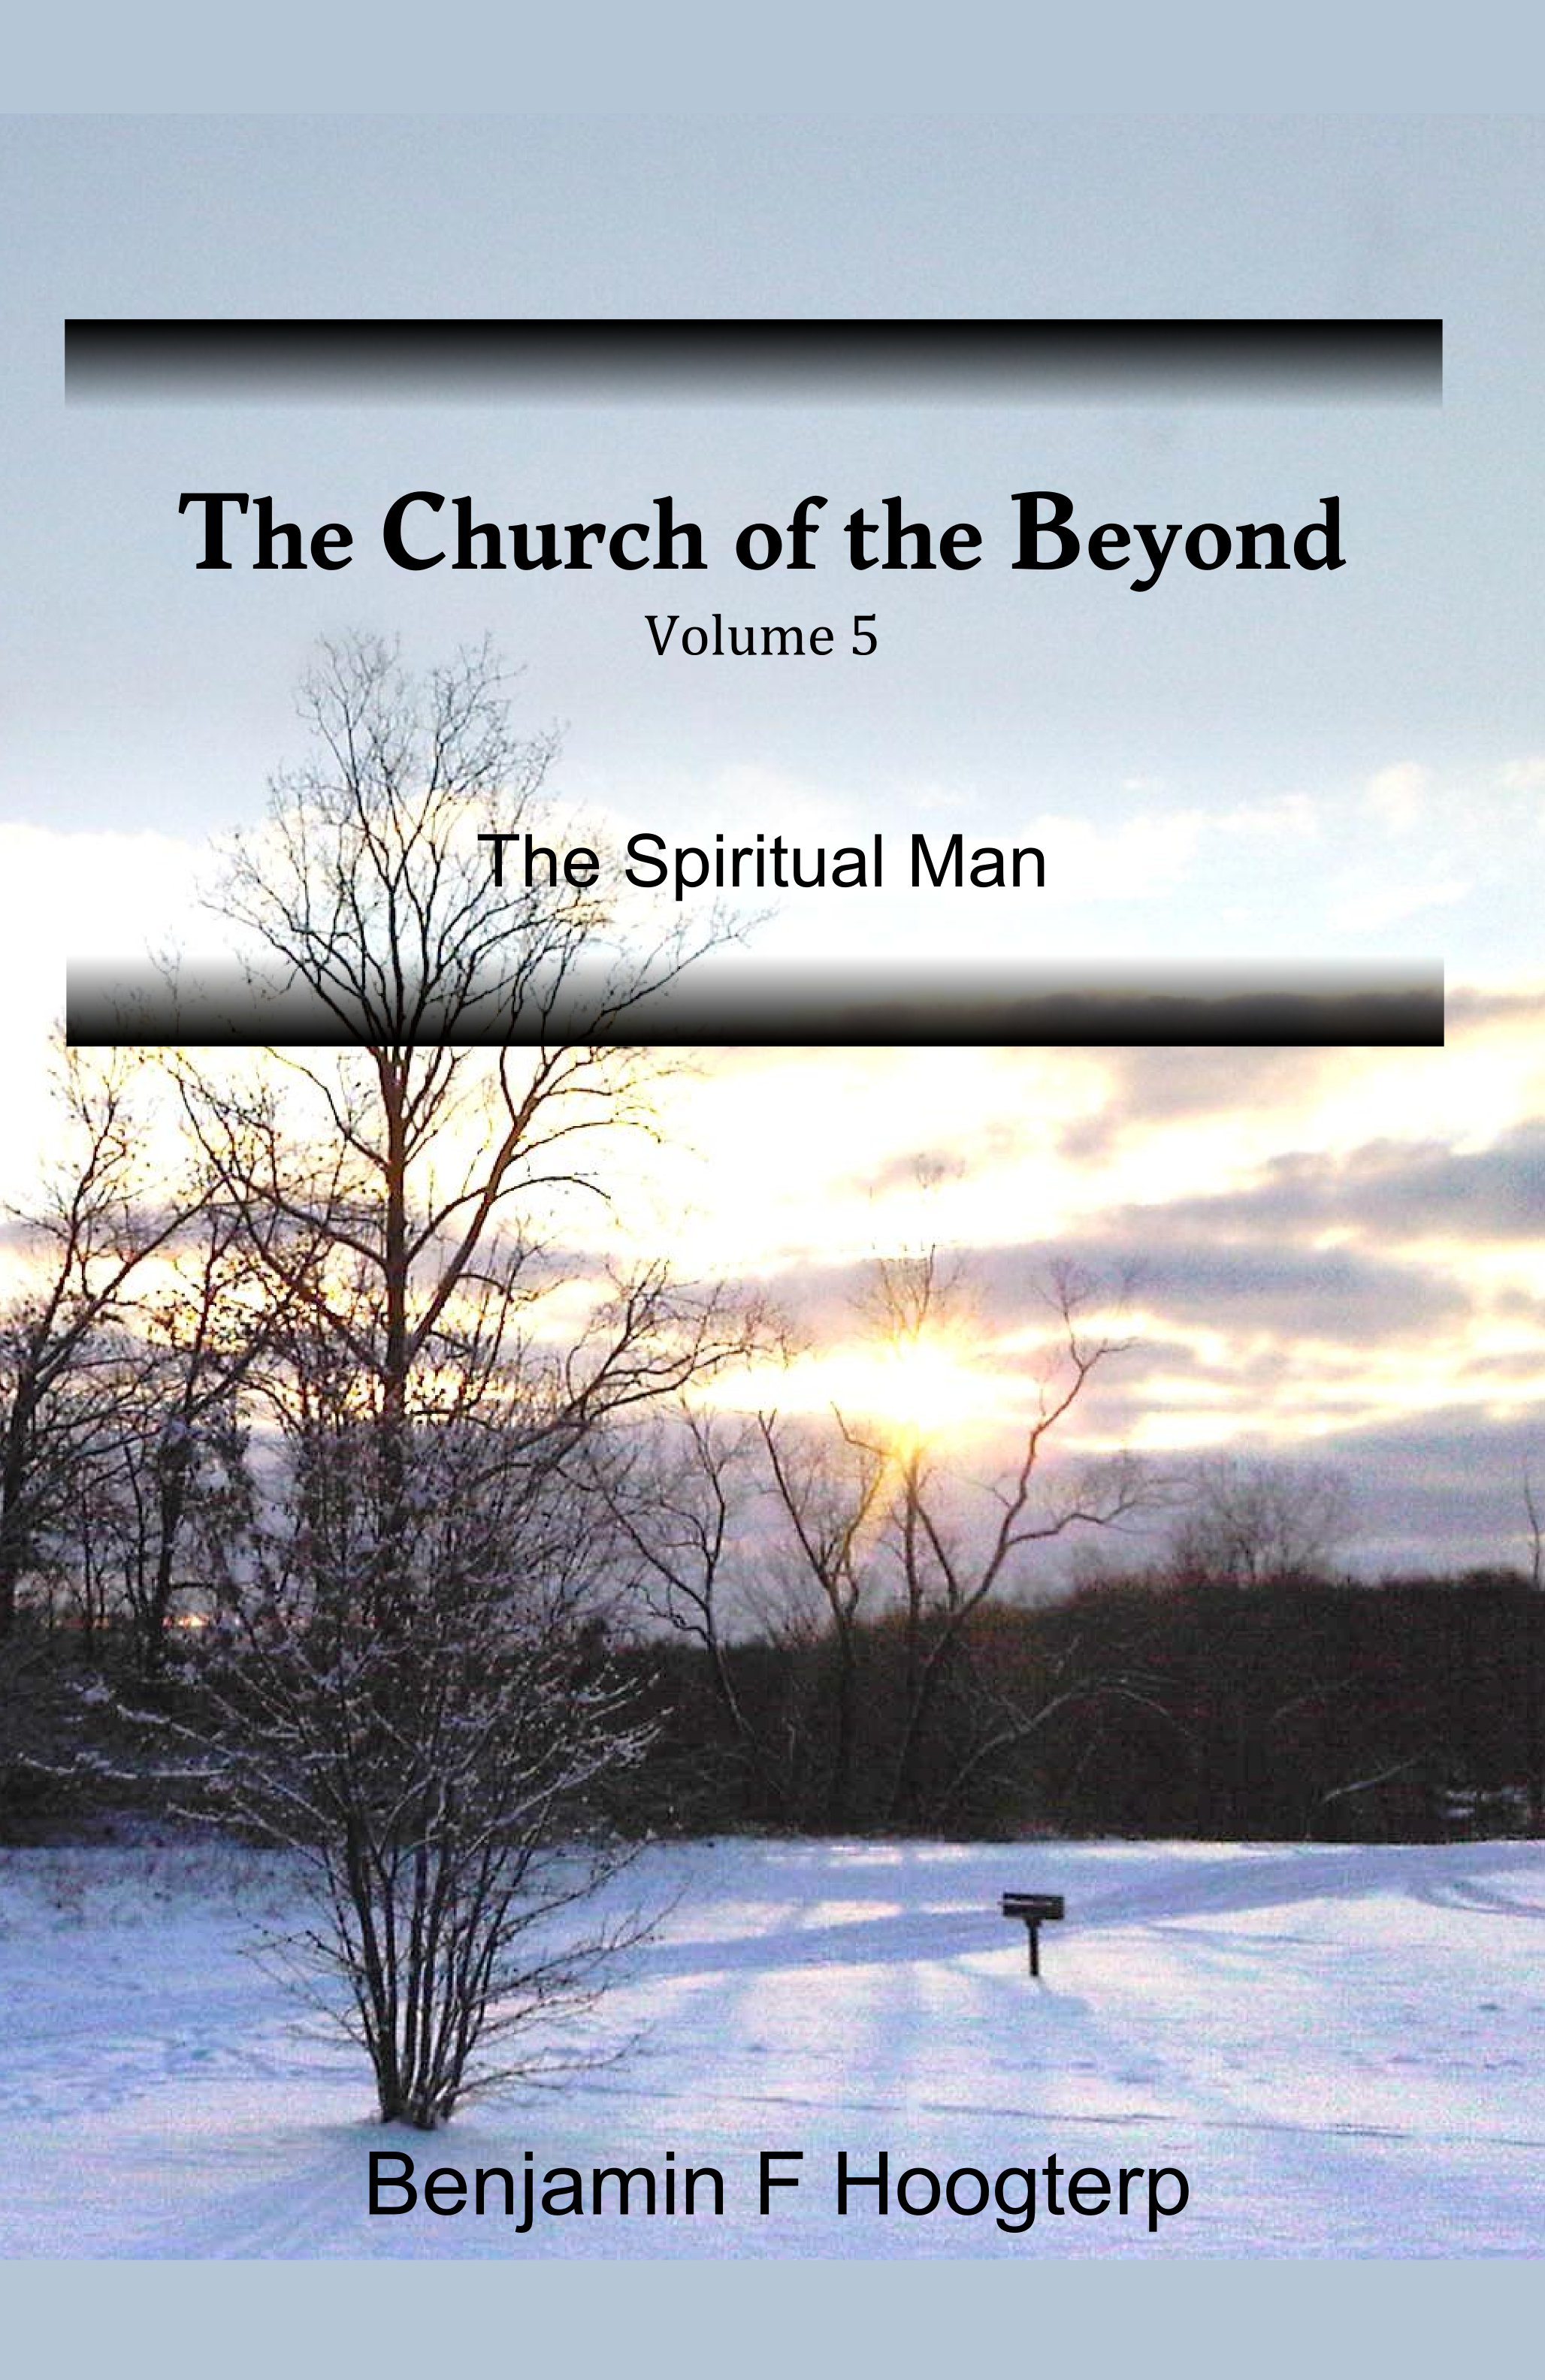 The Church of the Beyond, vol. 5: The Spiritual Man